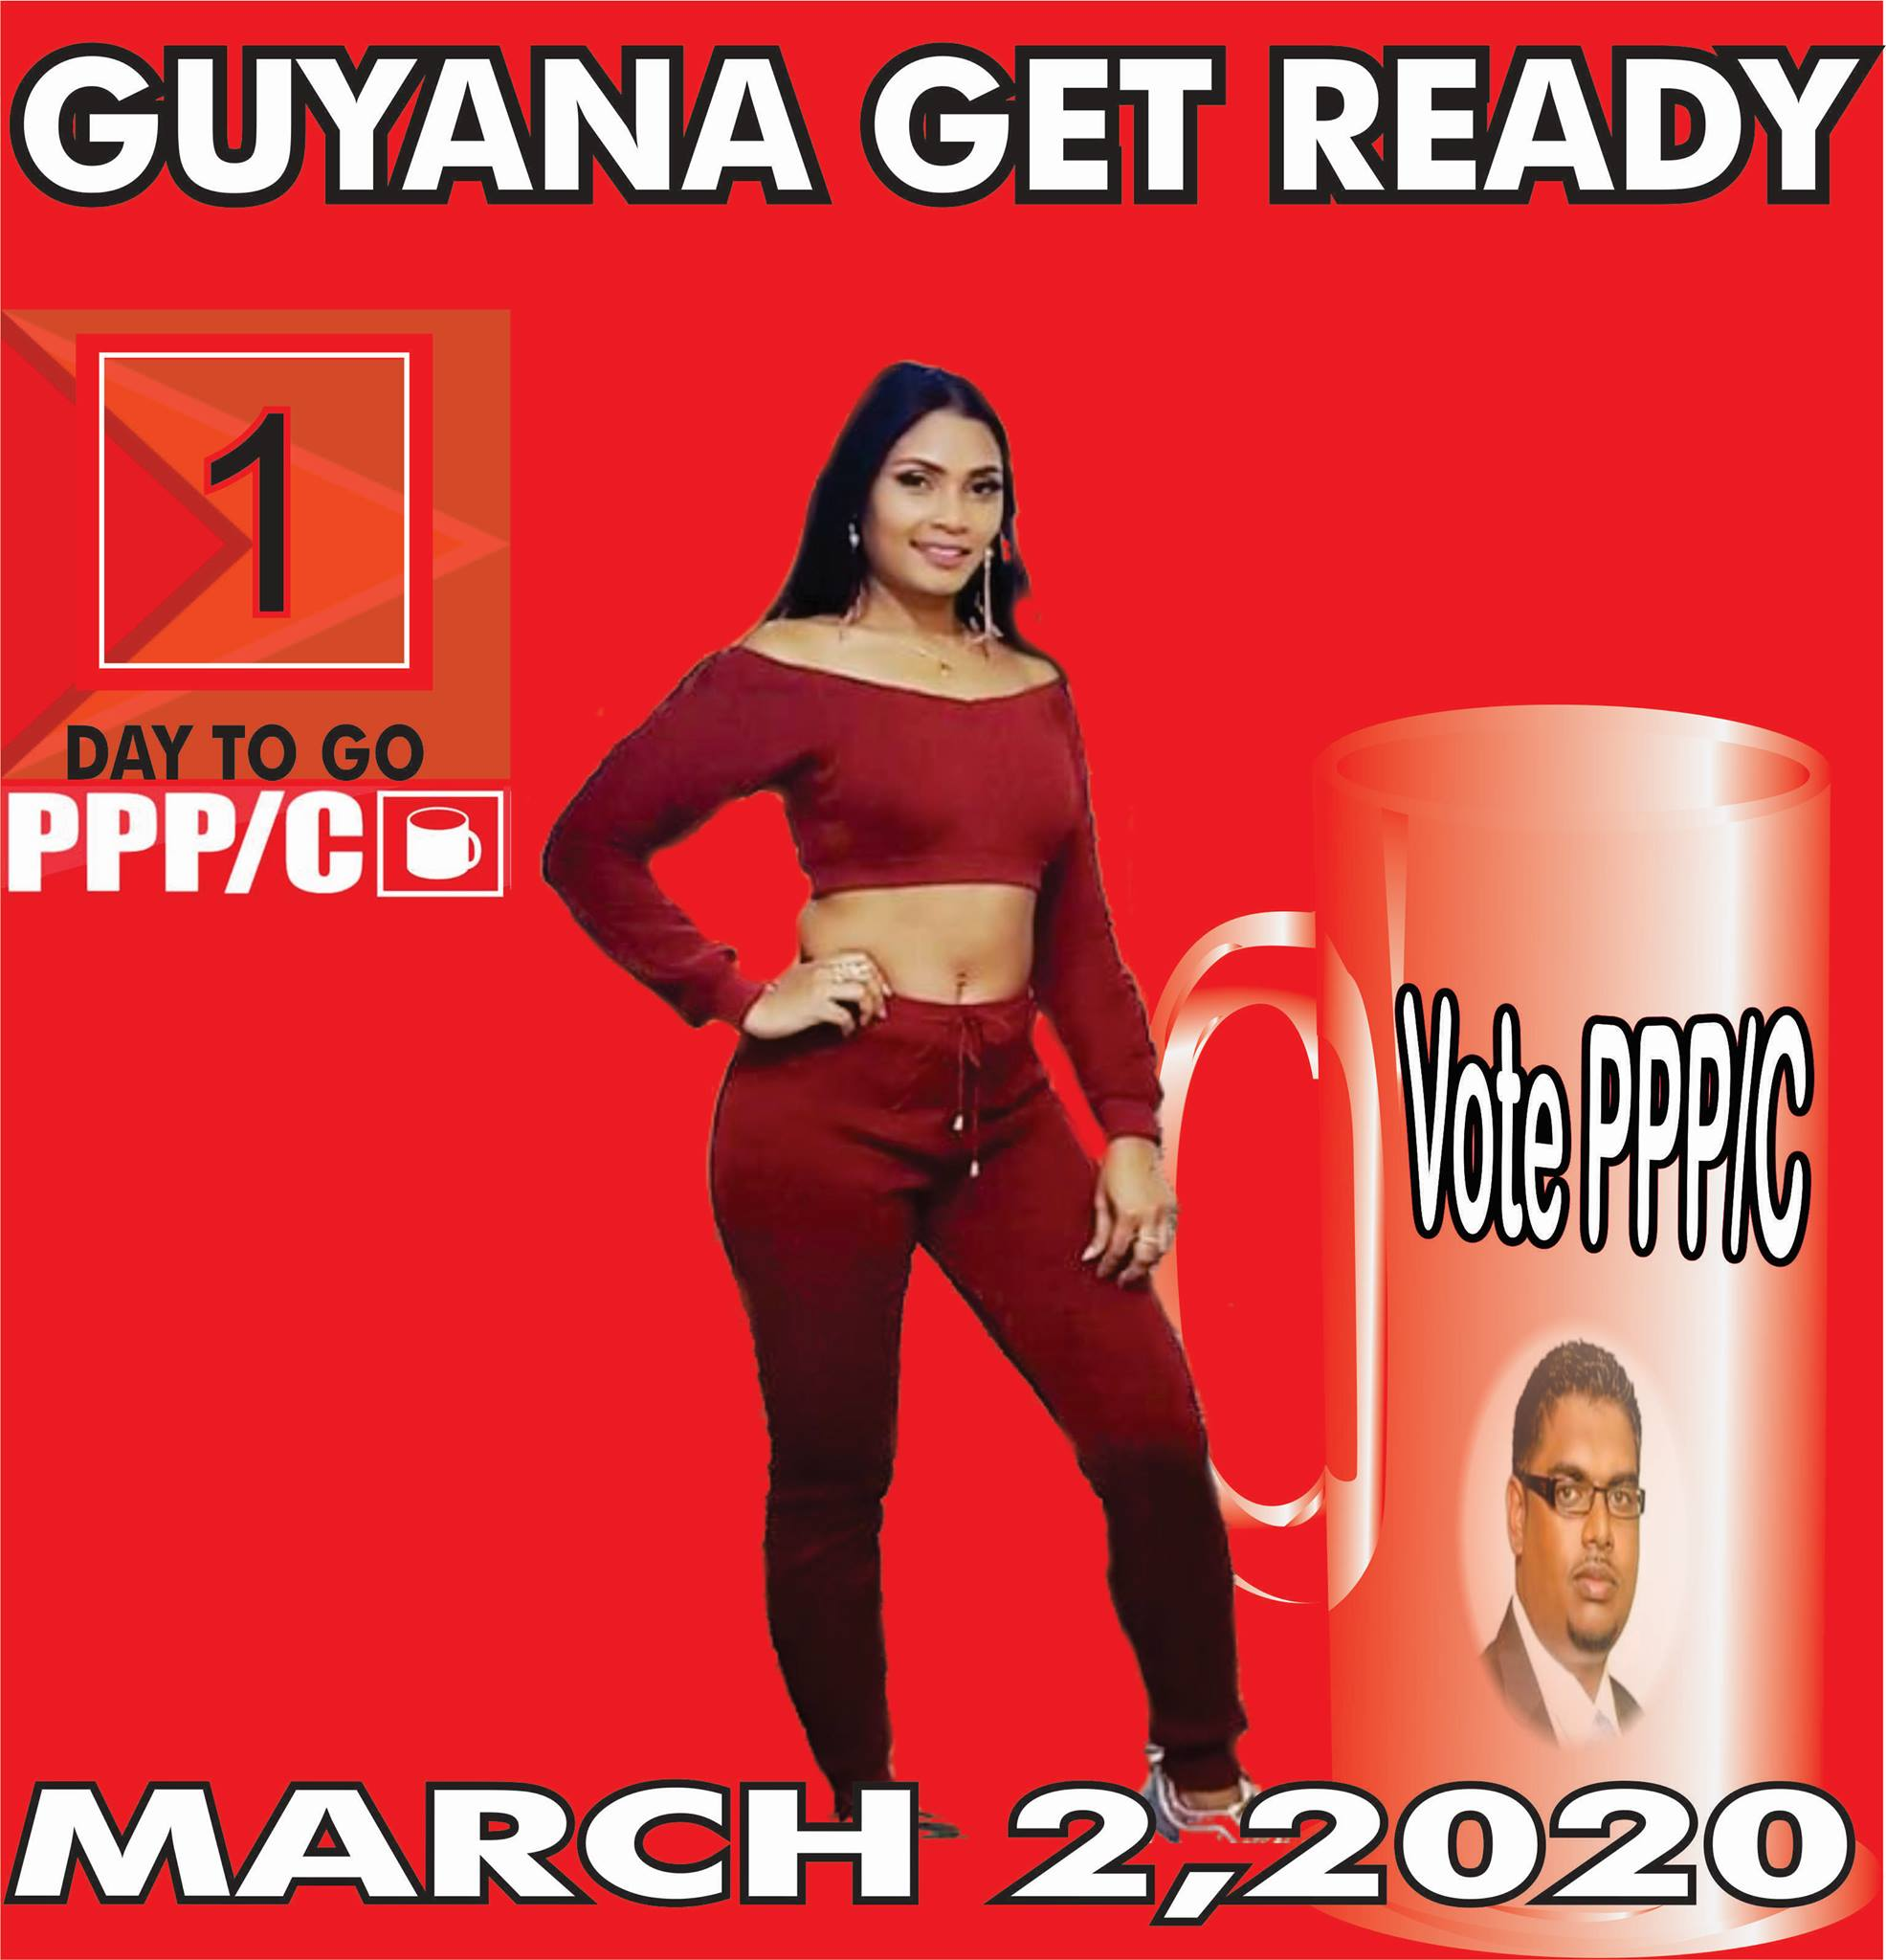 Guyanese Political Party uses Chutney Artist Image against her Wishes